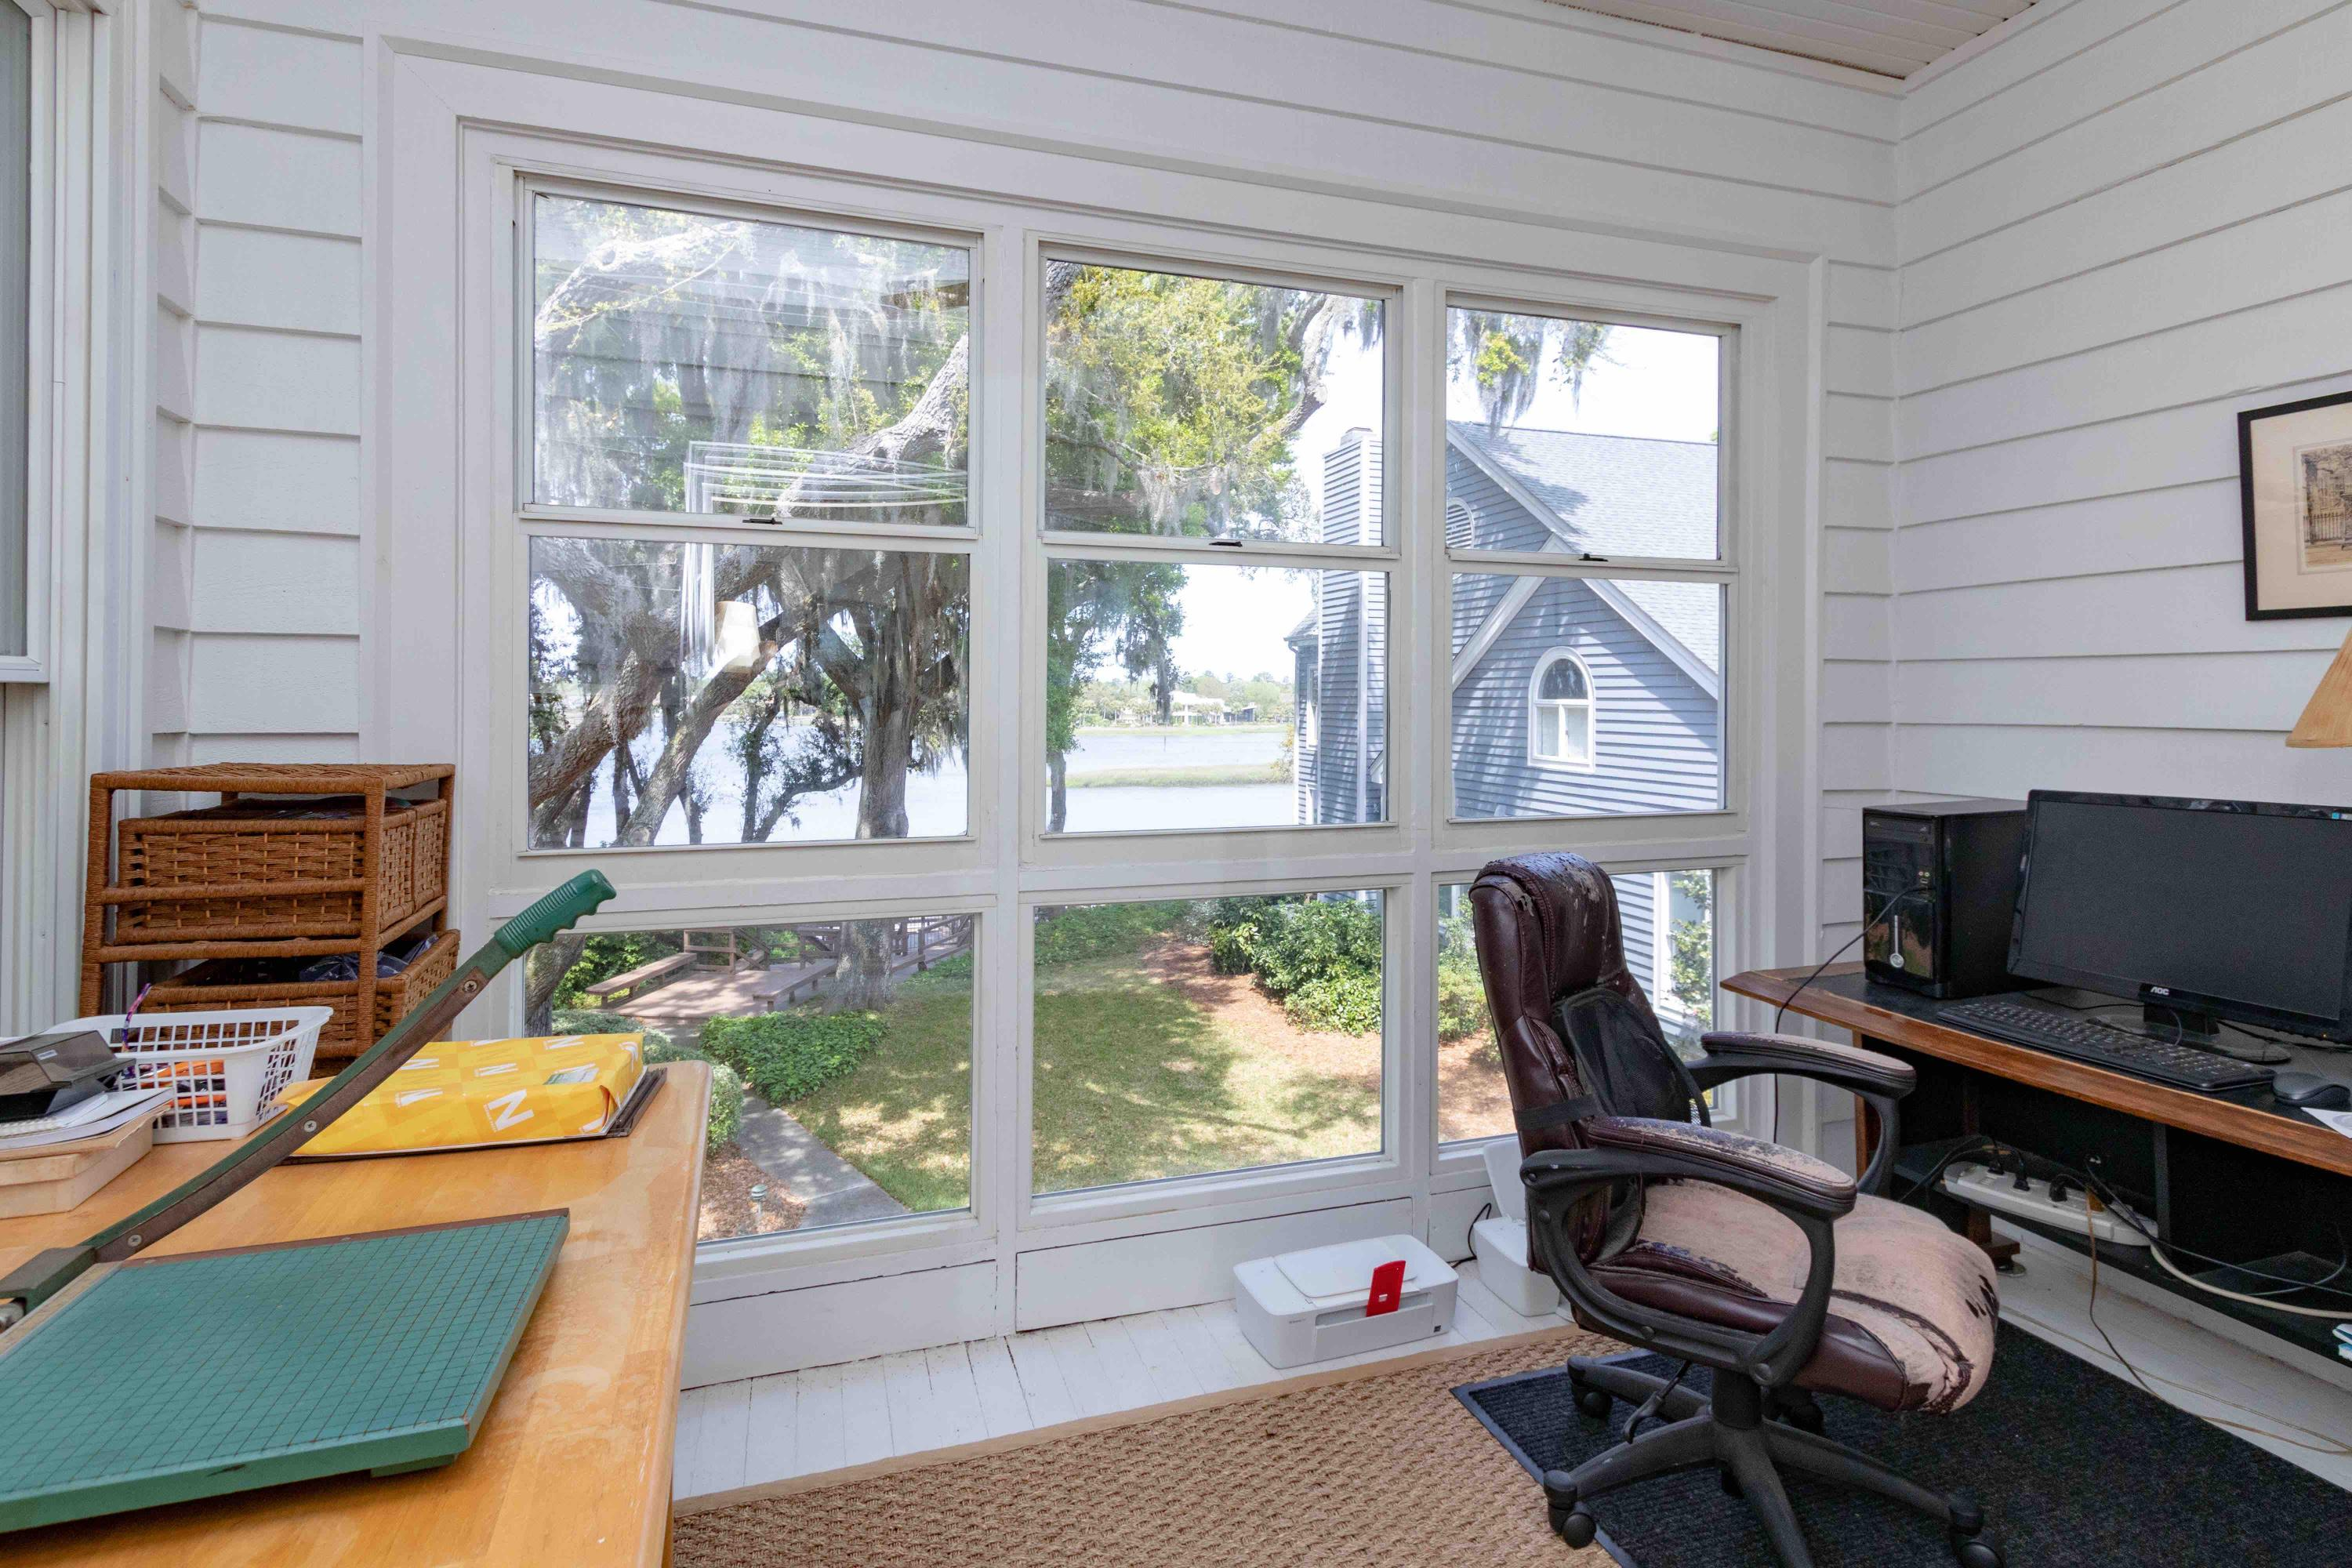 Waterfront Plantation Homes For Sale - 107 Waterfront Plantation, Charleston, SC - 32